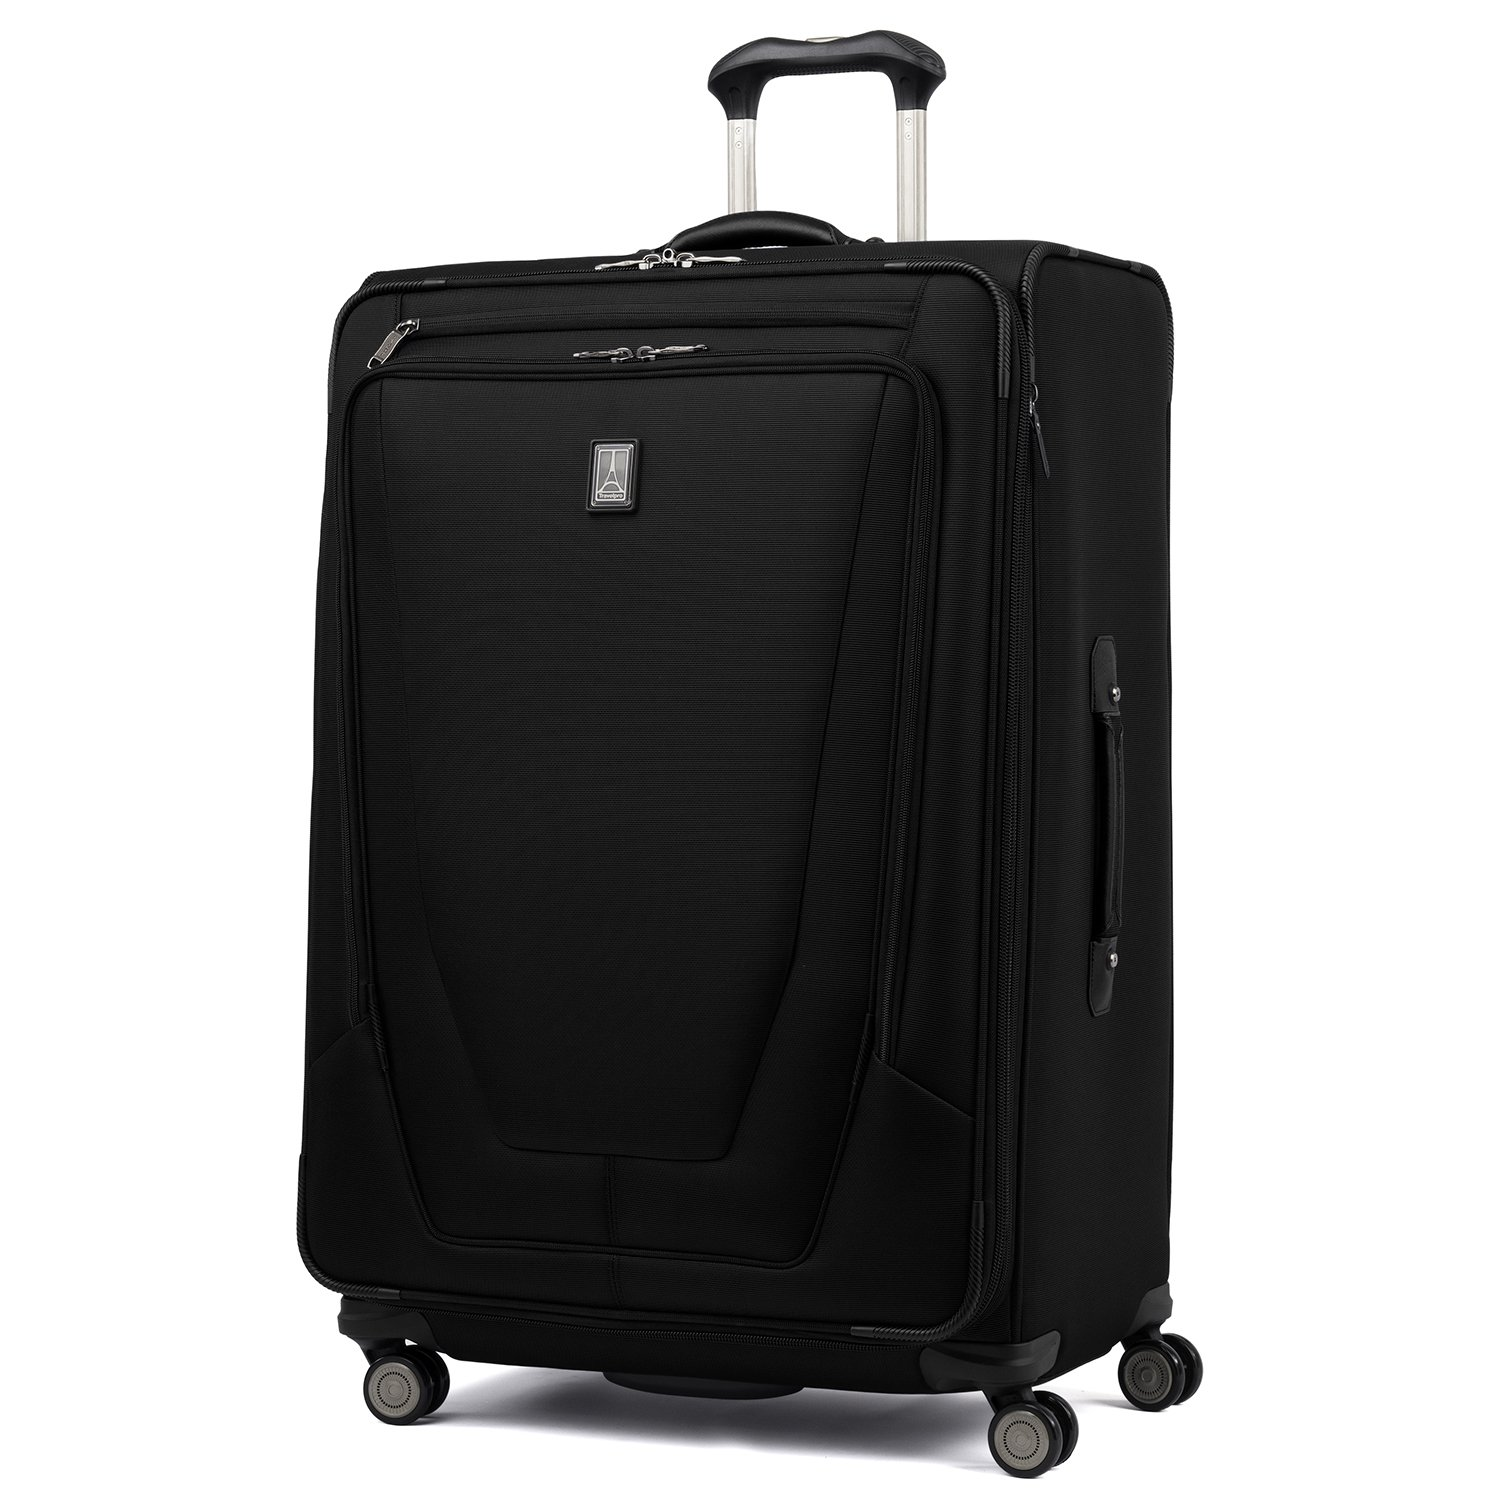 Travelpro Luggage Expandable Spinner Suitcase